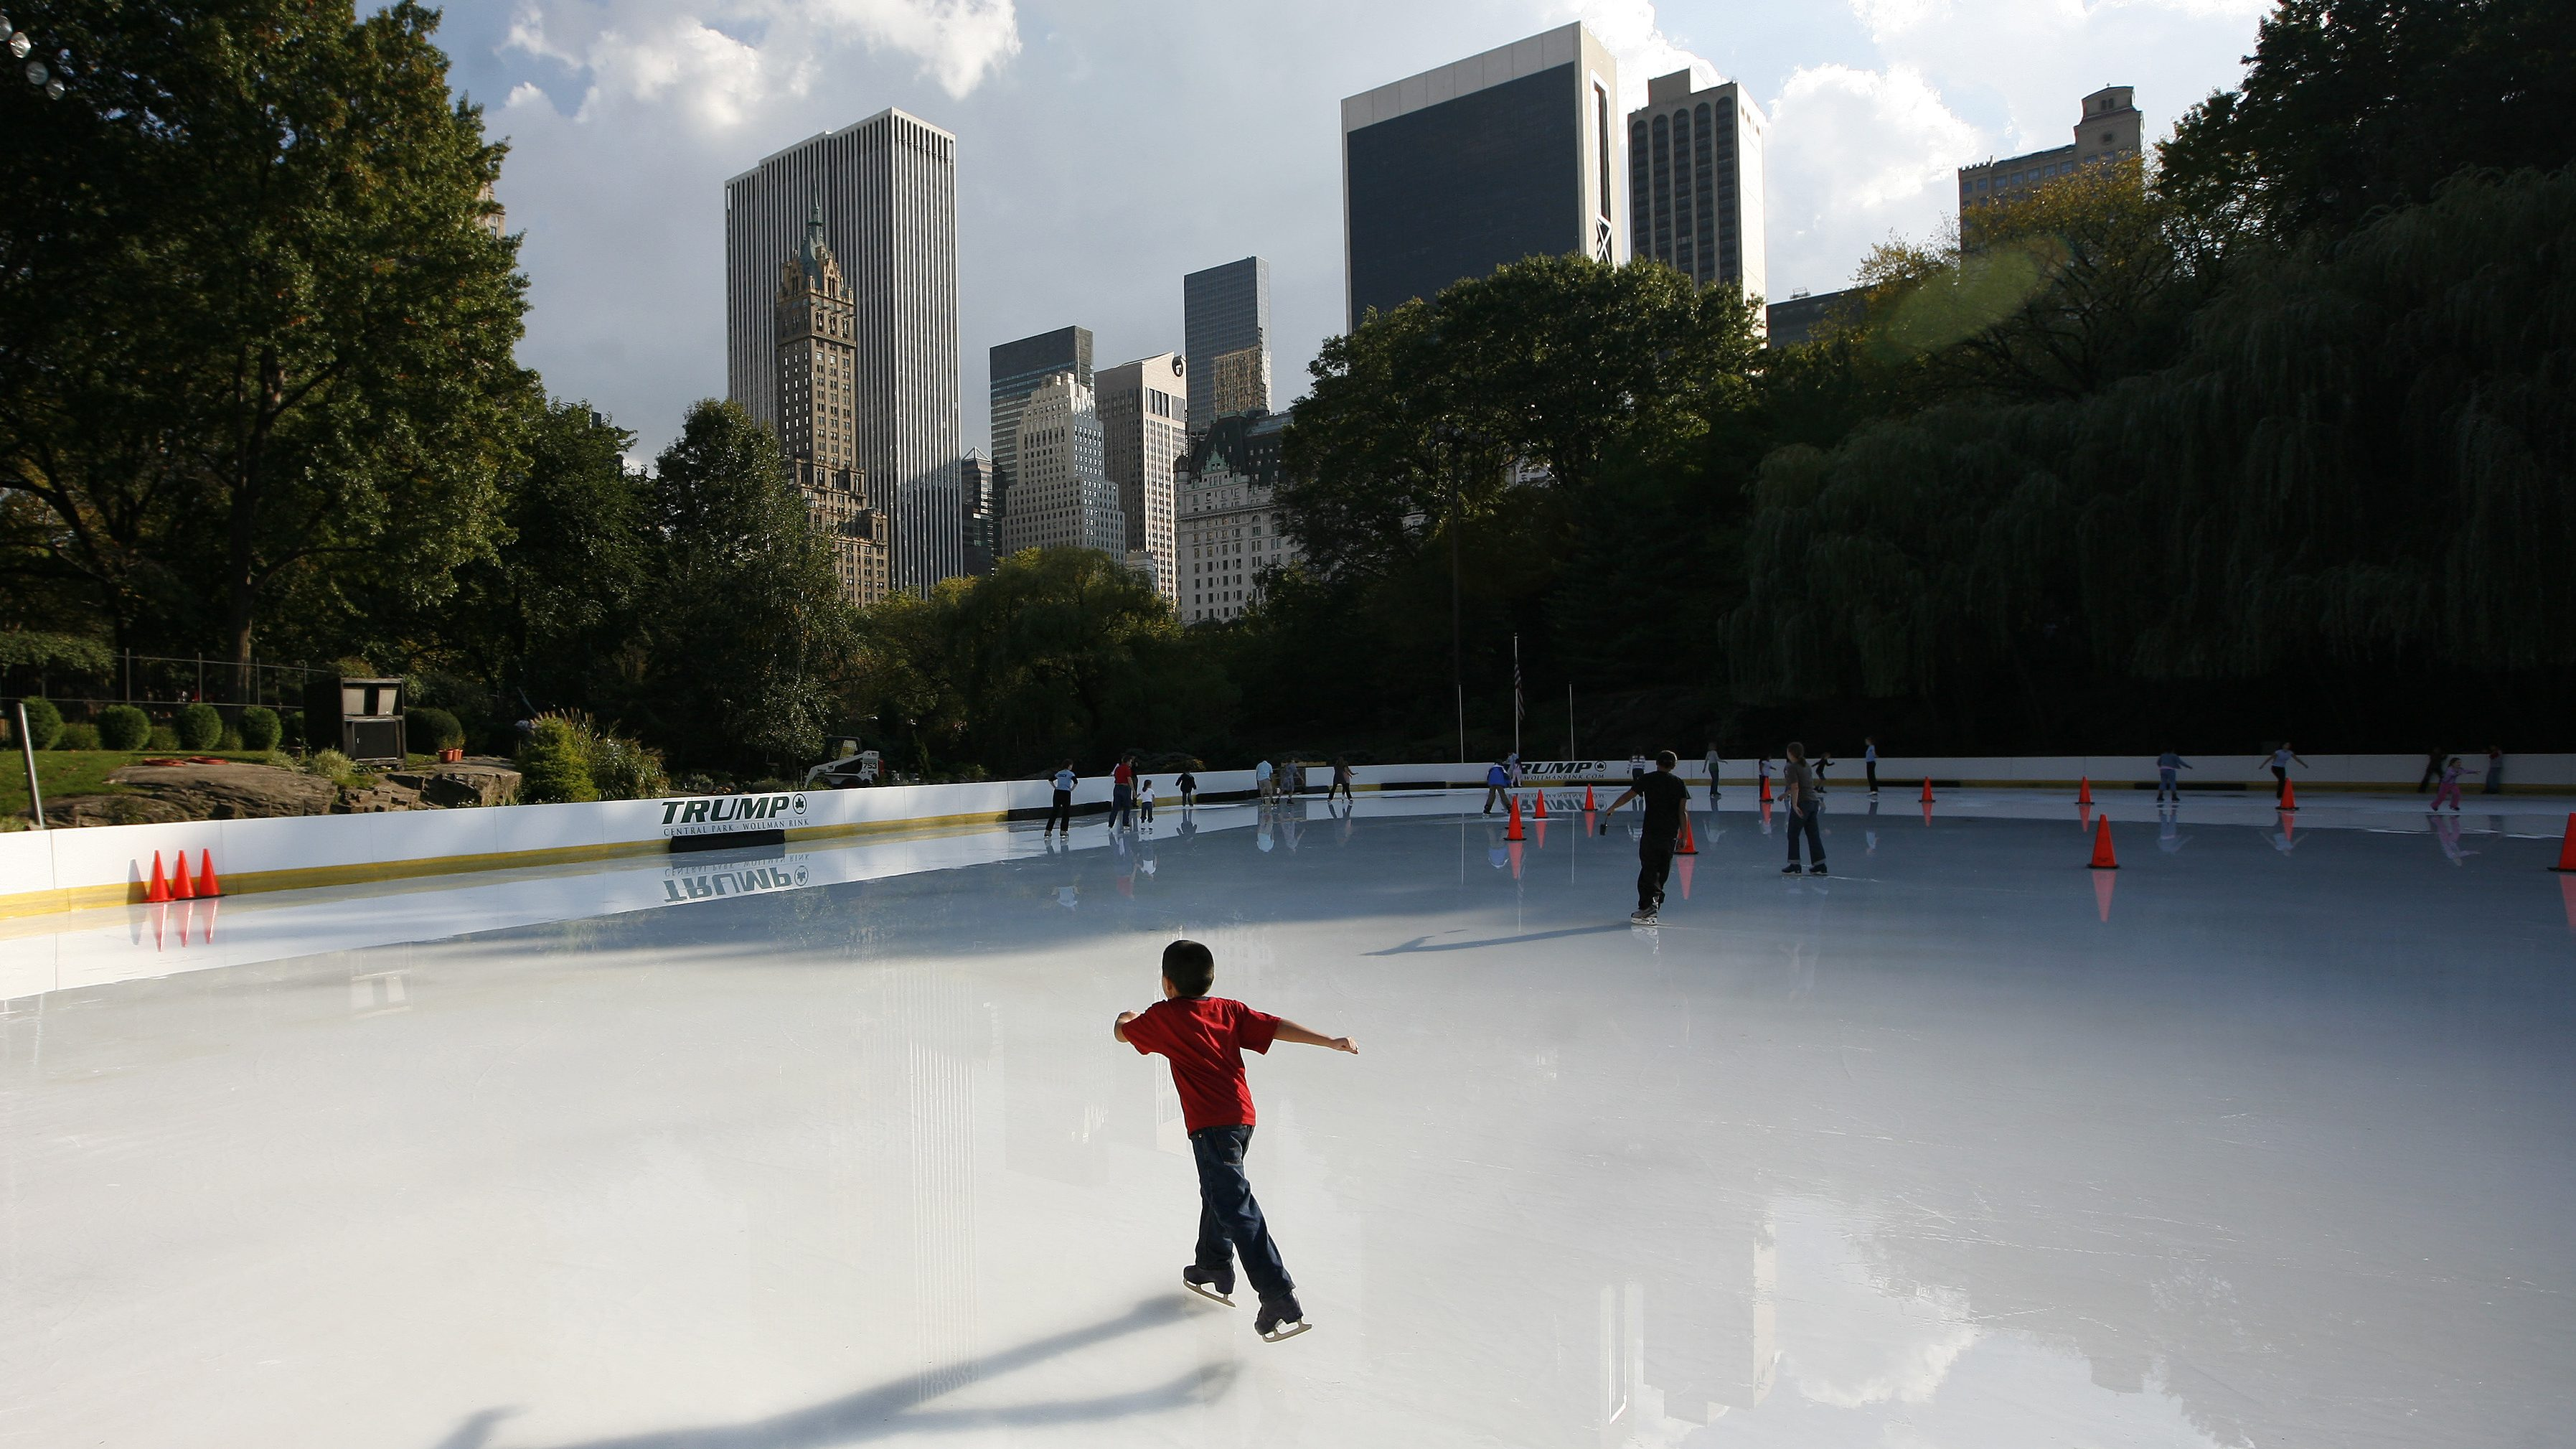 People skate on the Wollman ice rink in Central Park, which opened for the season today to temperatures in the mid 70's, in New York